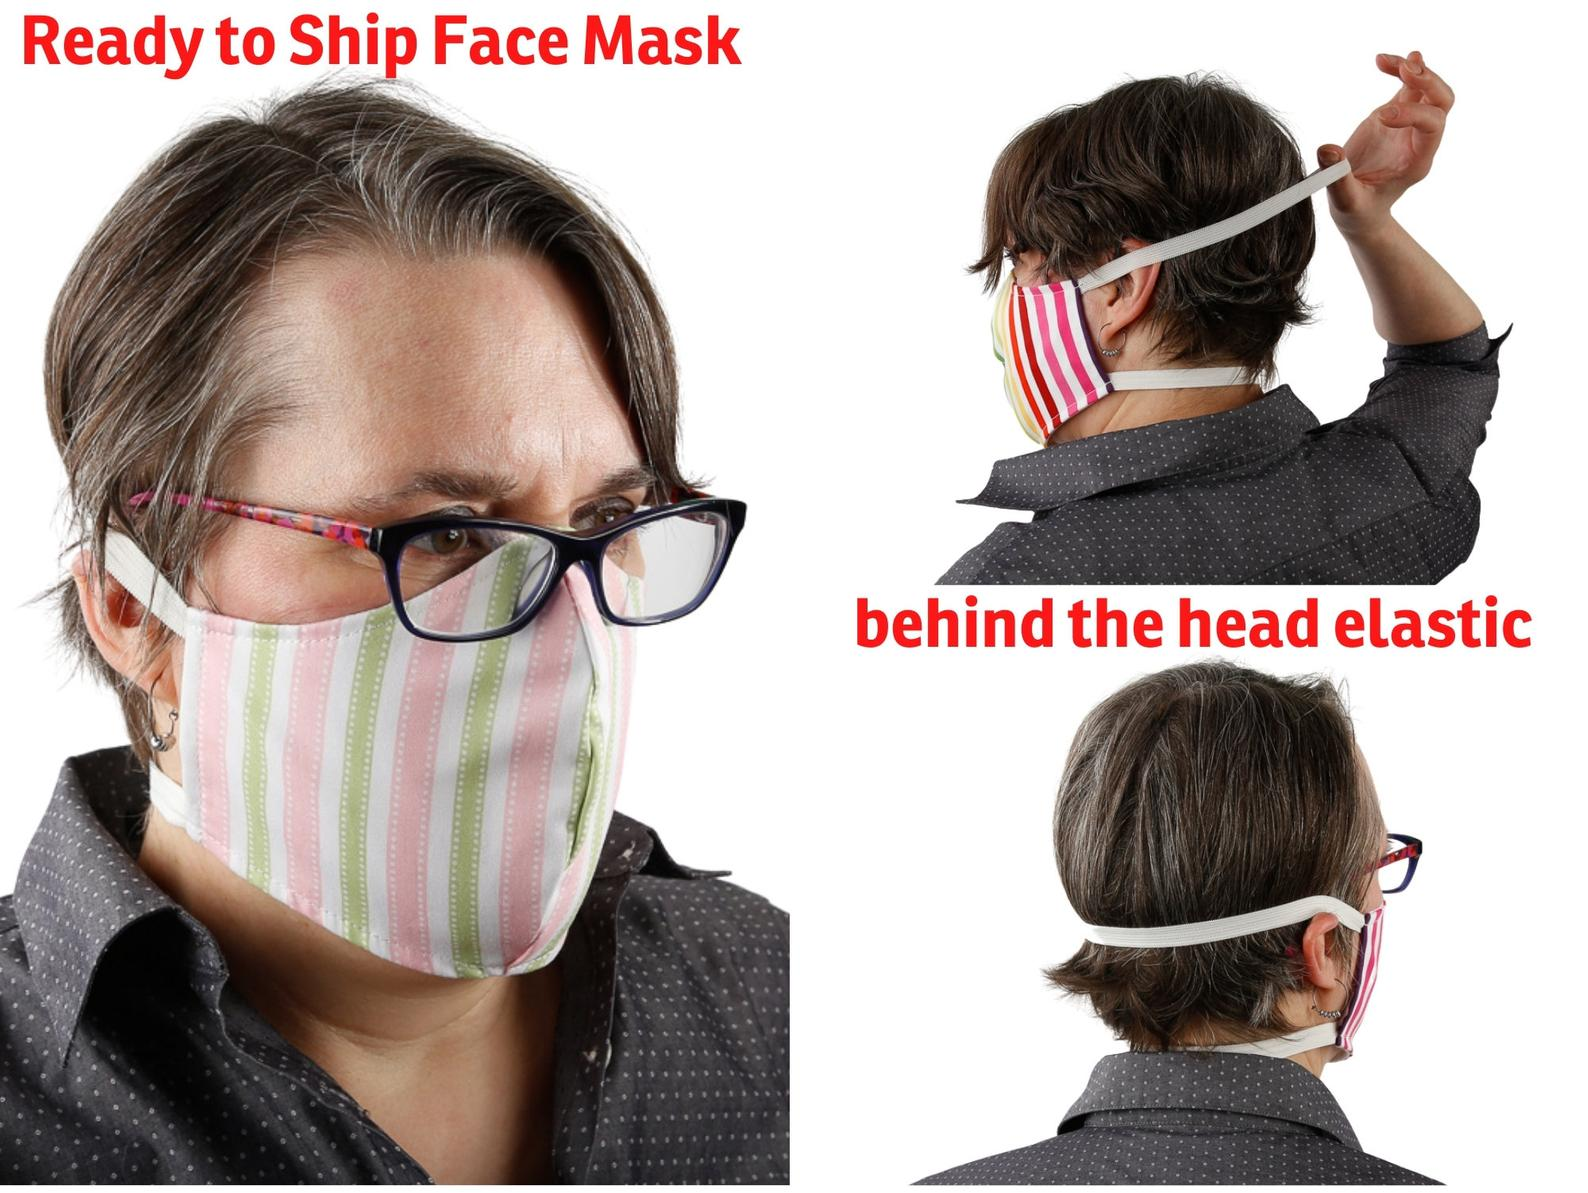 Hearing aid-friendly face mask